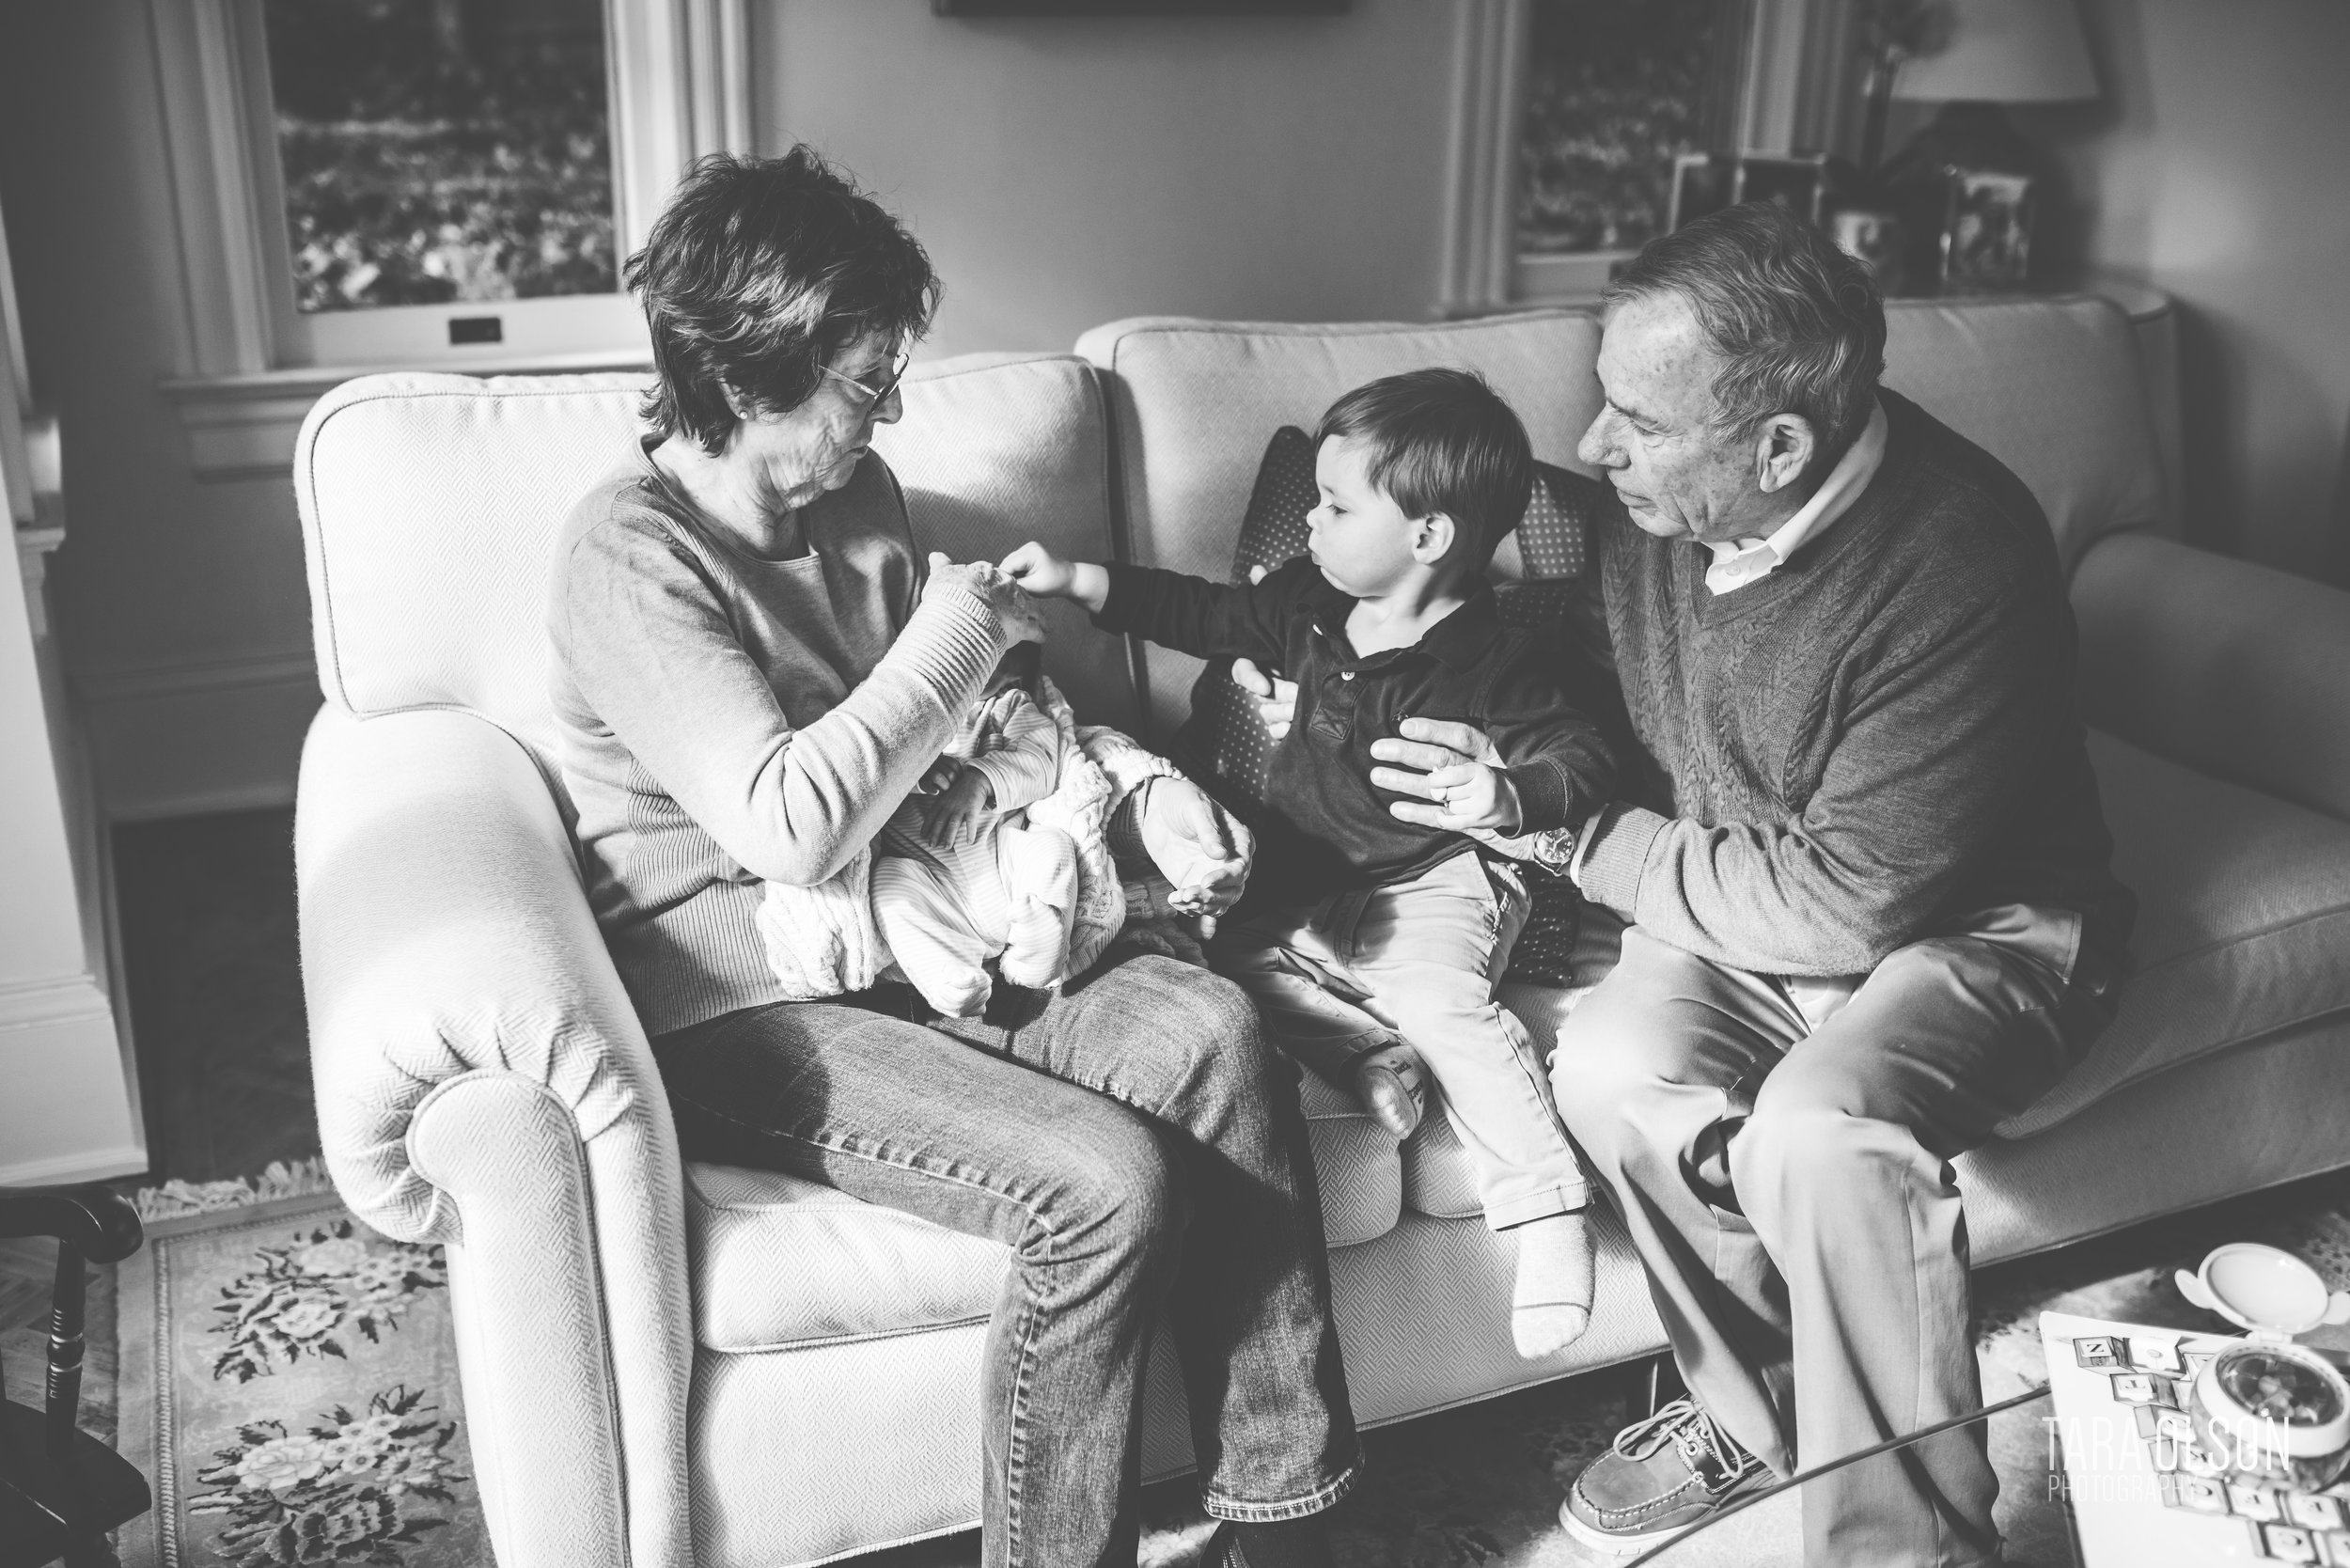 I love this image because it shows a deep connection between grandparents and grandchildren, and between two brothers.